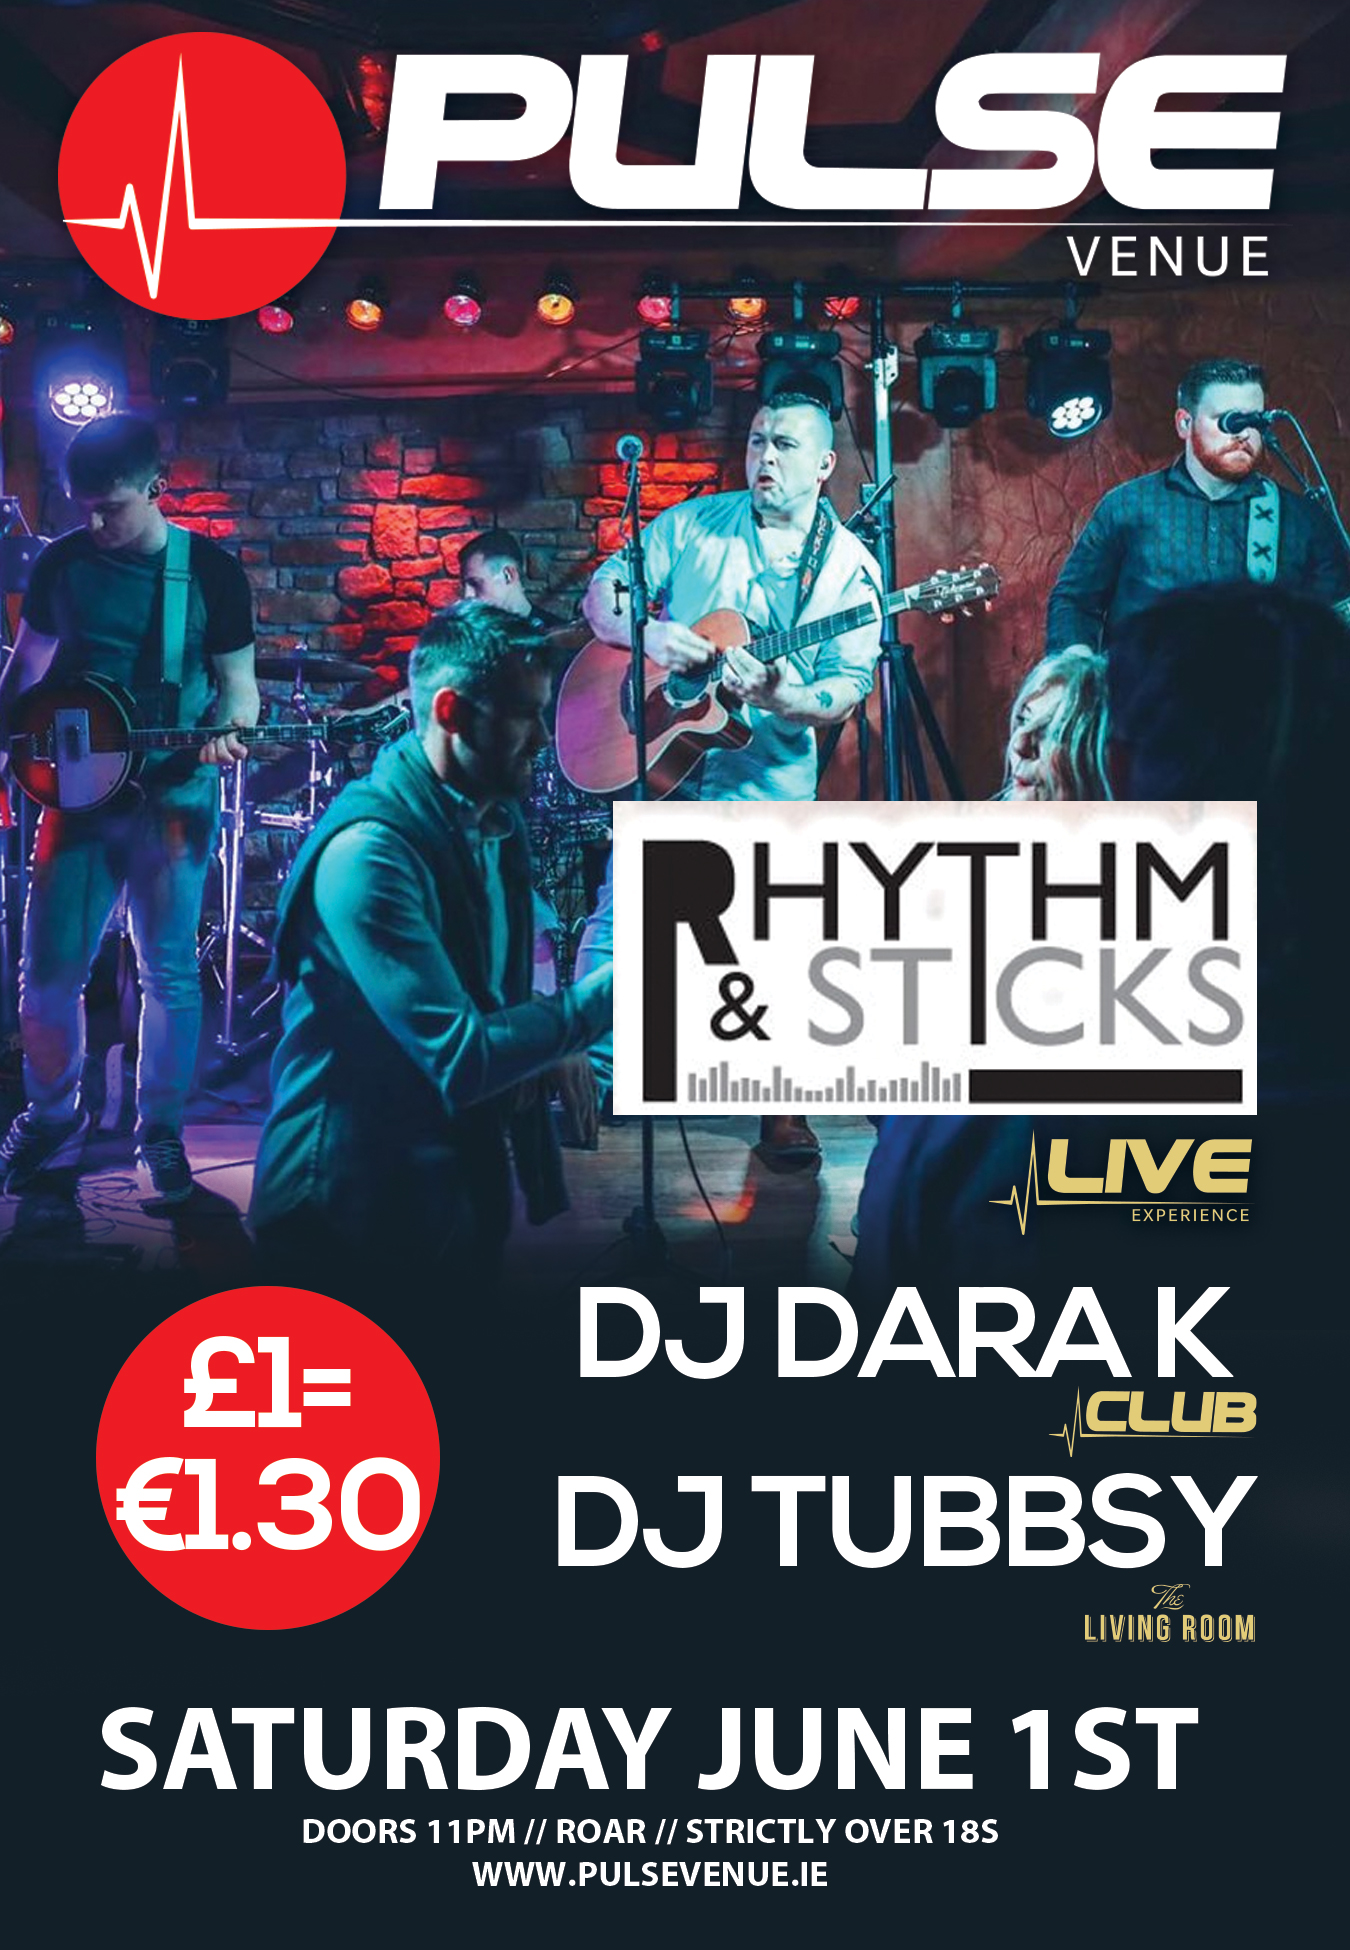 pulse-venue---rhythm-and-sticks-dara-k-tubbsy-sat-june-1-2019.jpg